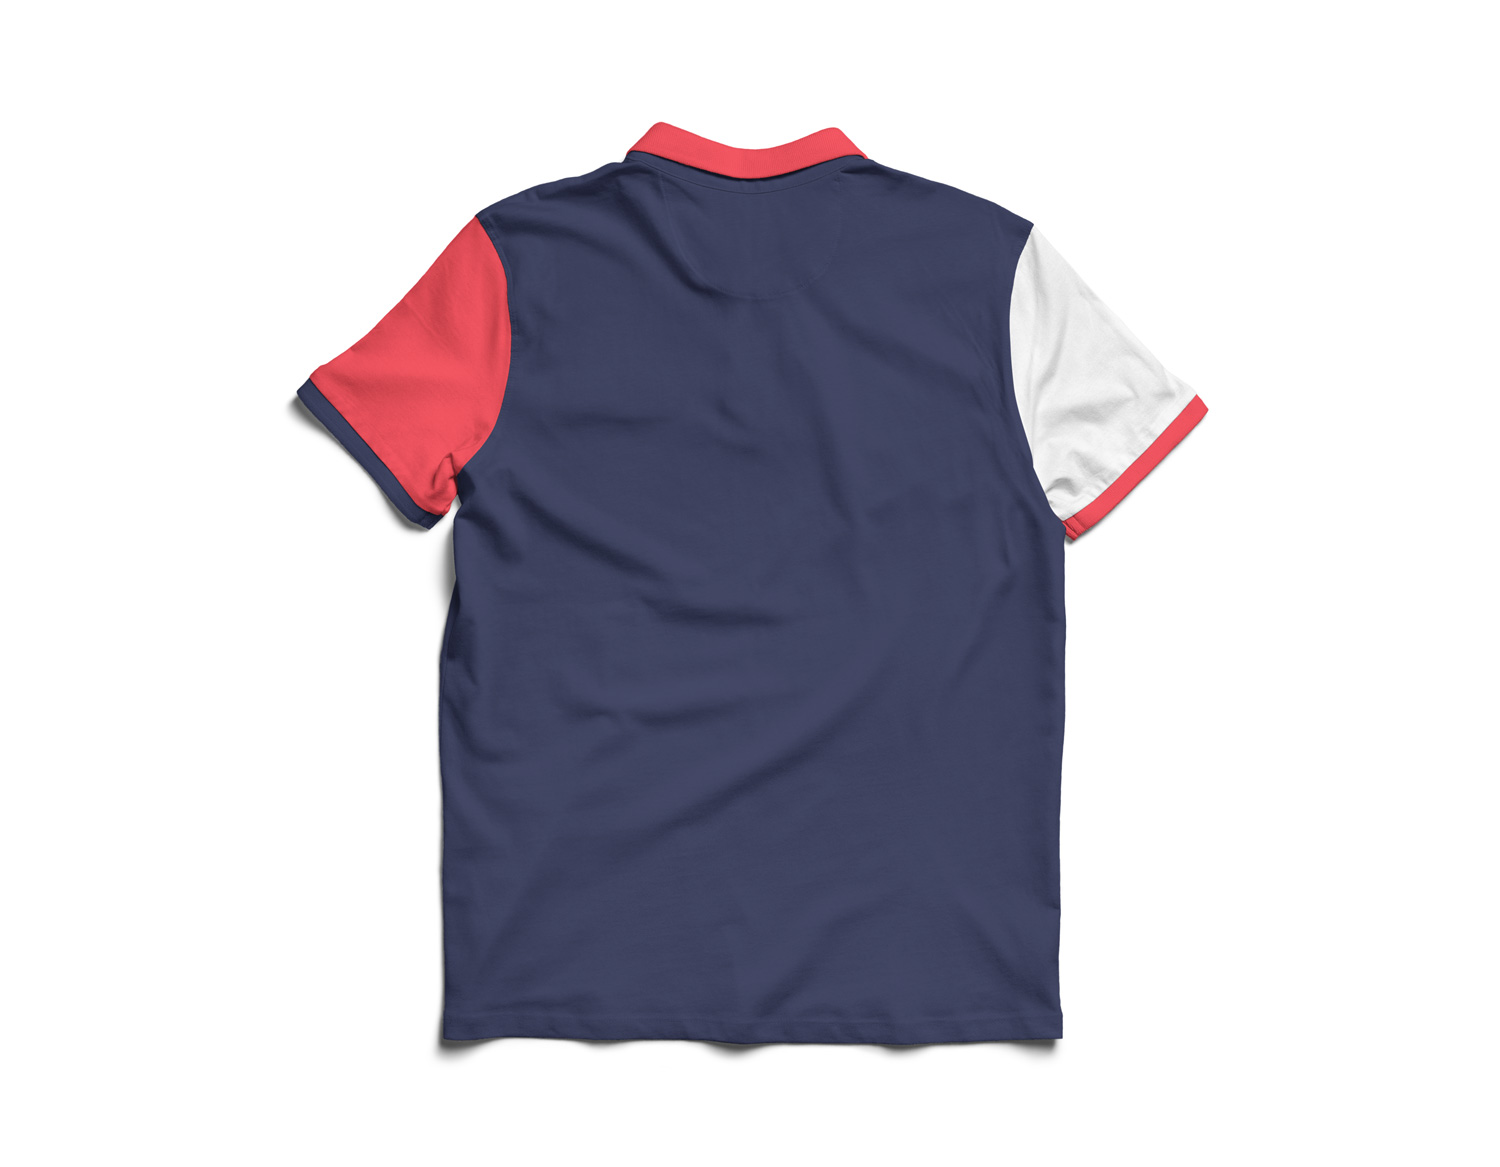 polo t shirt mockup template free download - T Shirt Template Psd Free Download